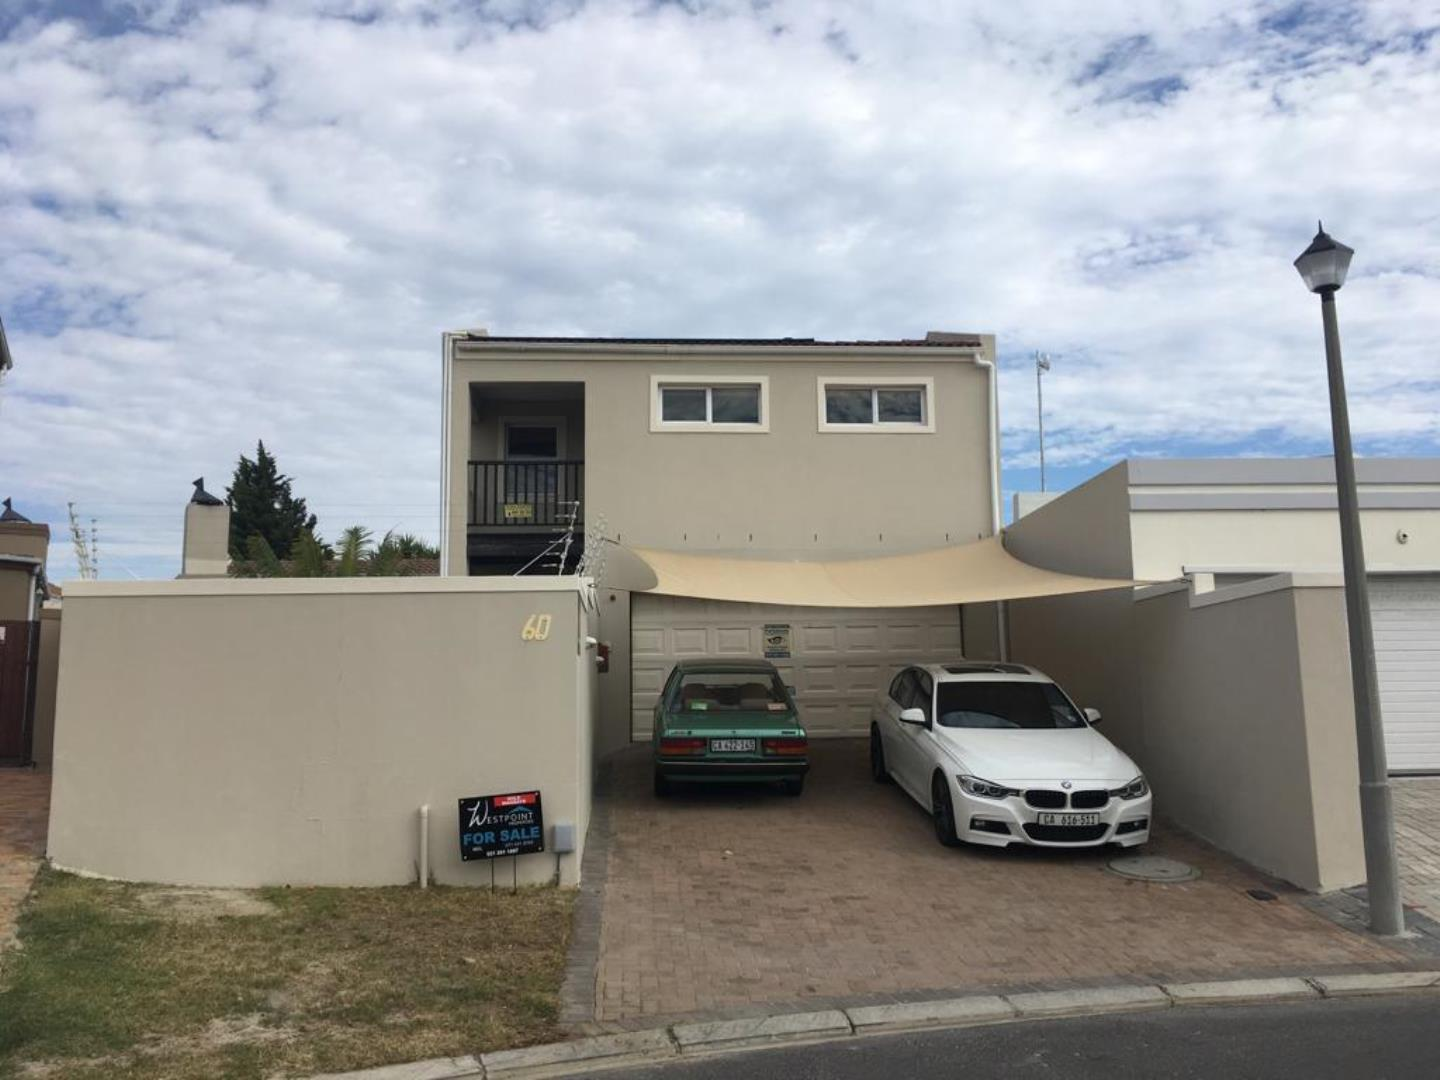 4 Bedroom  House for Sale in Blouberg - Western Cape